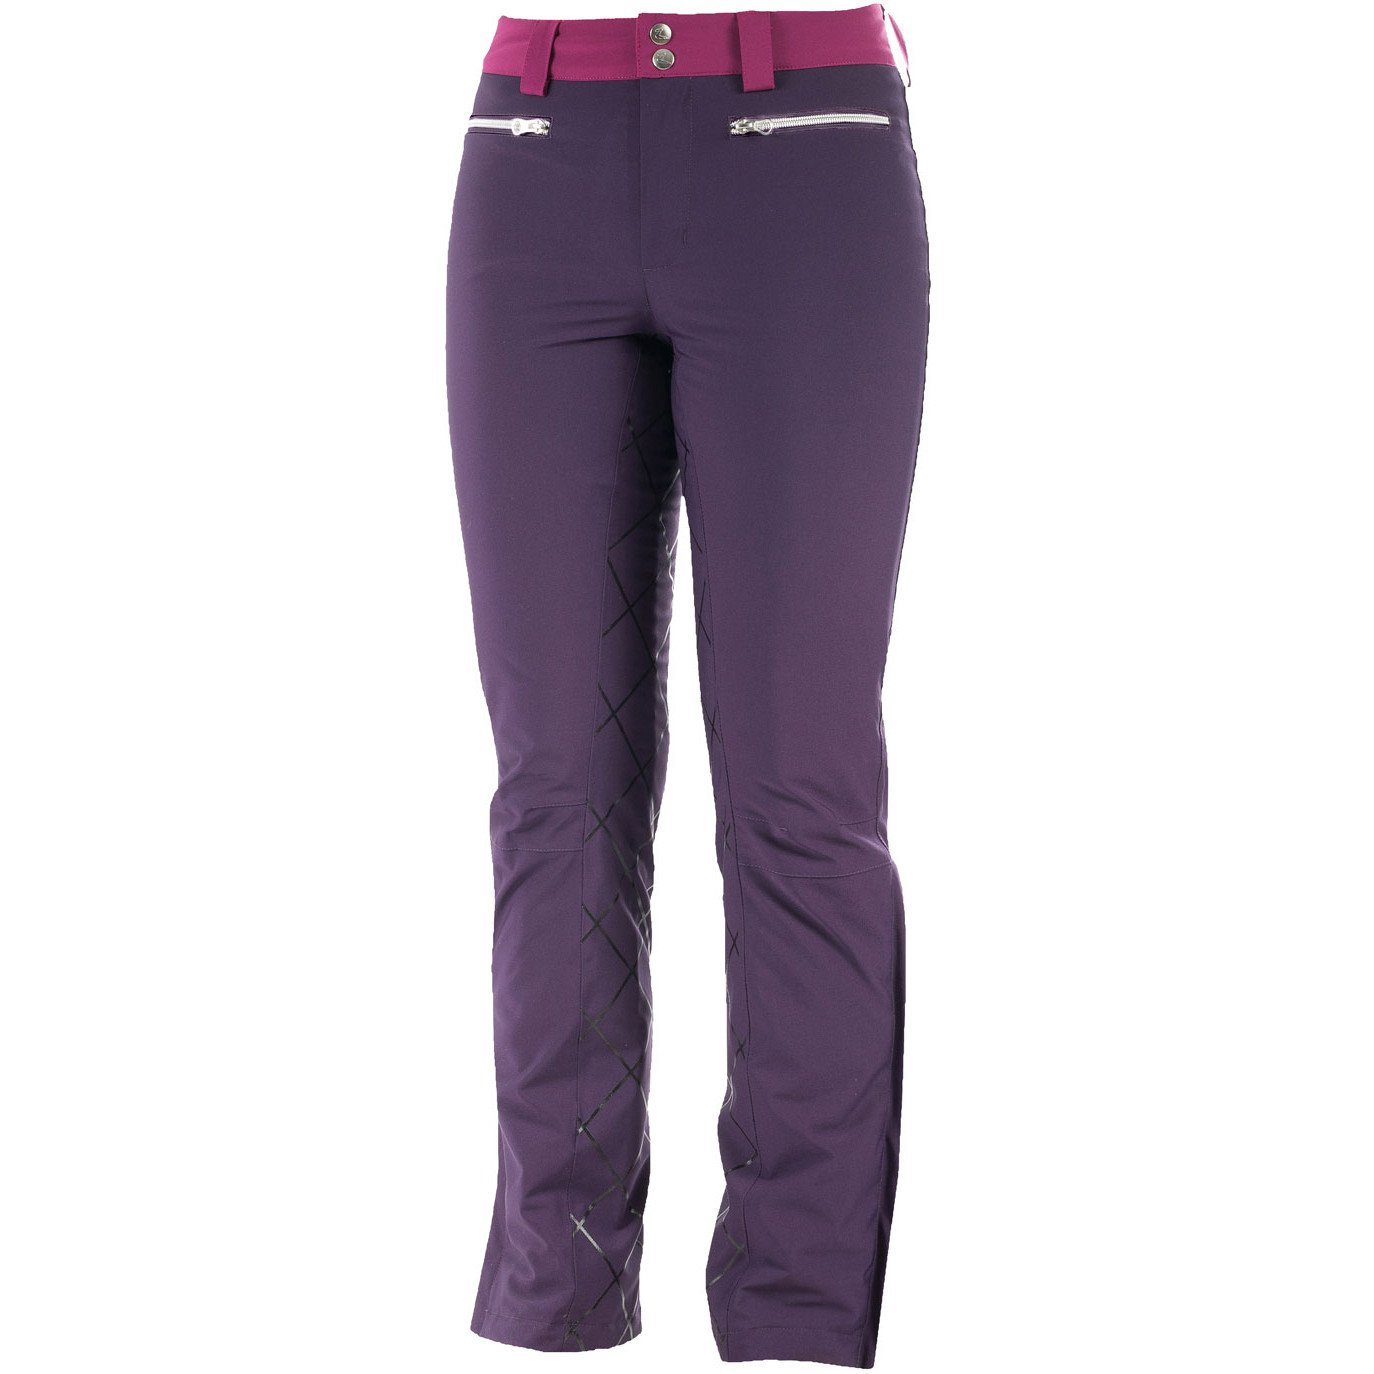 Horze Adeline Women's Padded Silicone Grip Riding Breeches